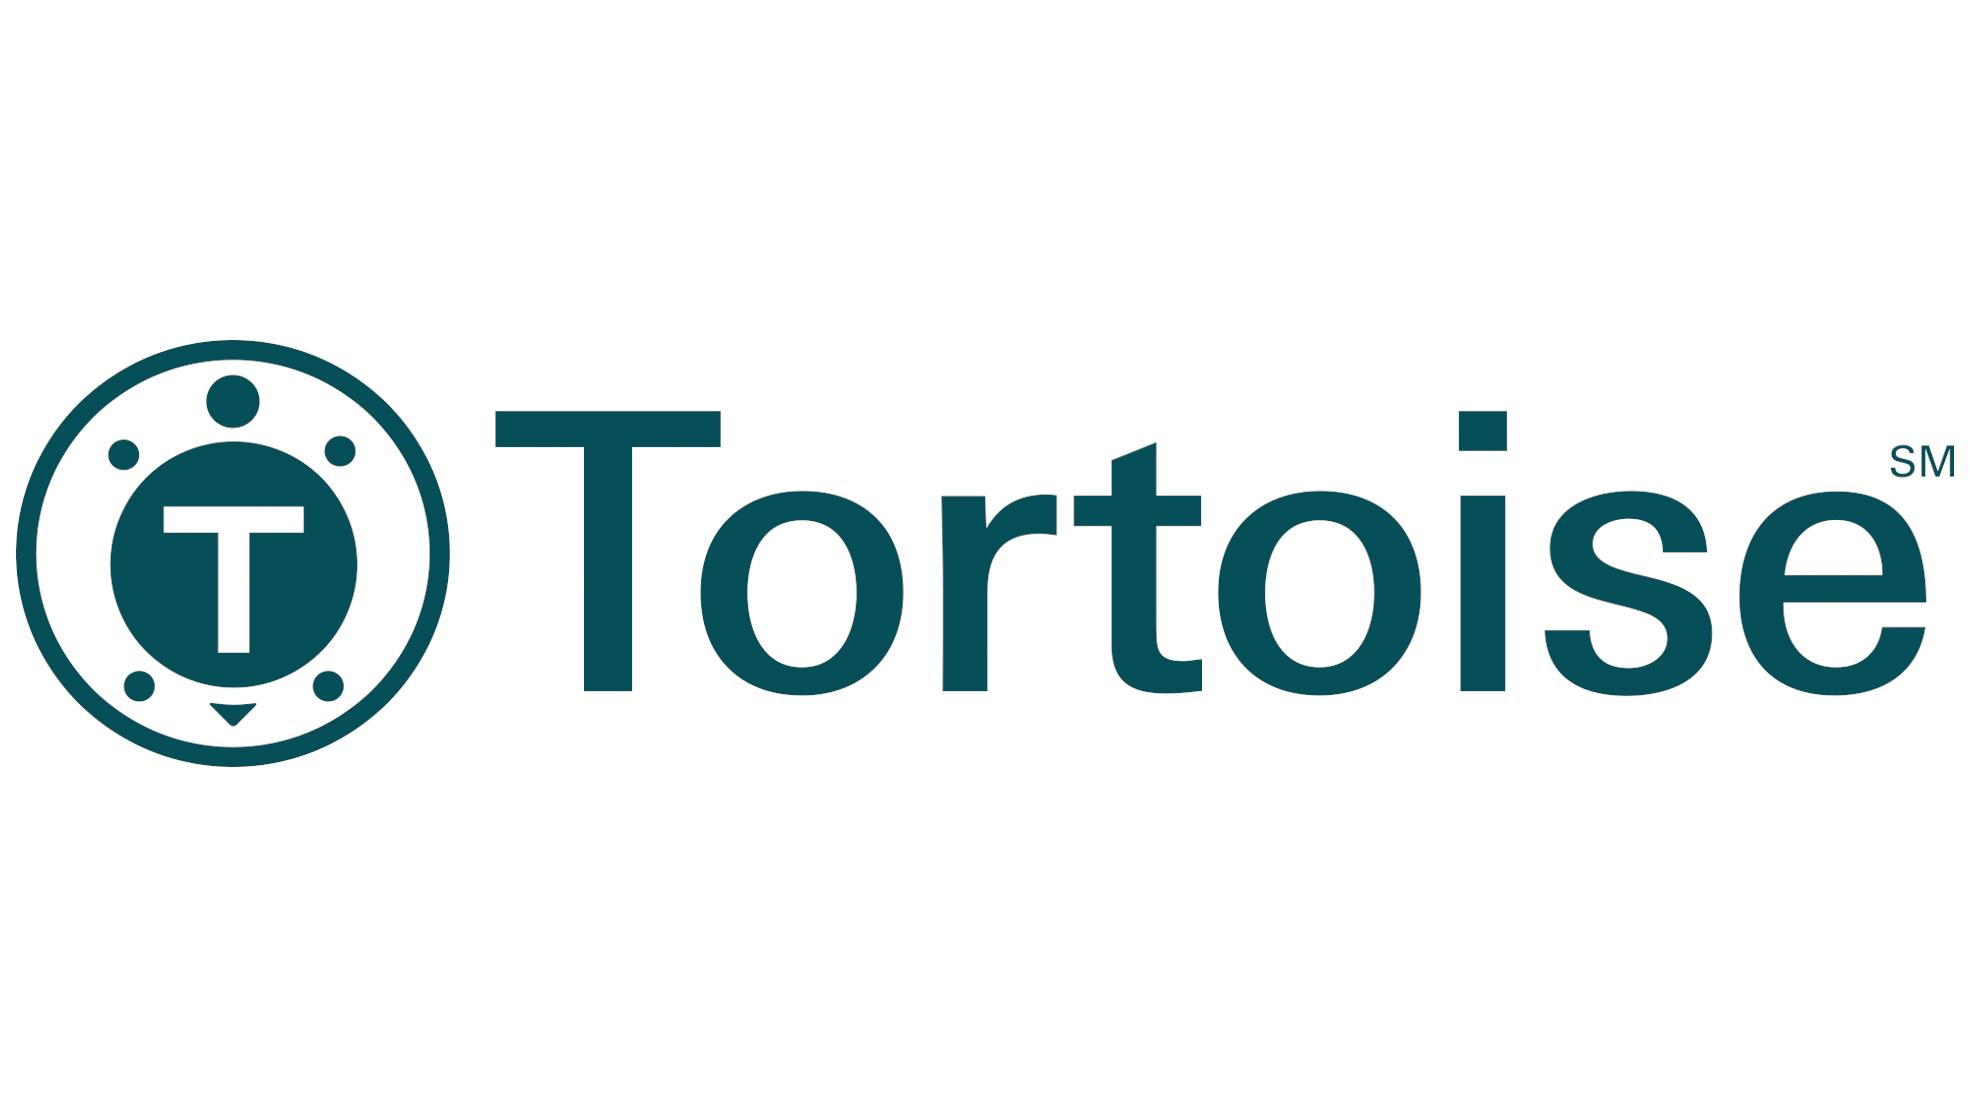 Tortoise Power and Energy Infrastructure Fund, Inc. (TPZ) Declares Monthly Distribution and Tortoise Essential Assets Income Term Fund (TEAF) Provides Update on Direct Investments and Portfolio Allocation